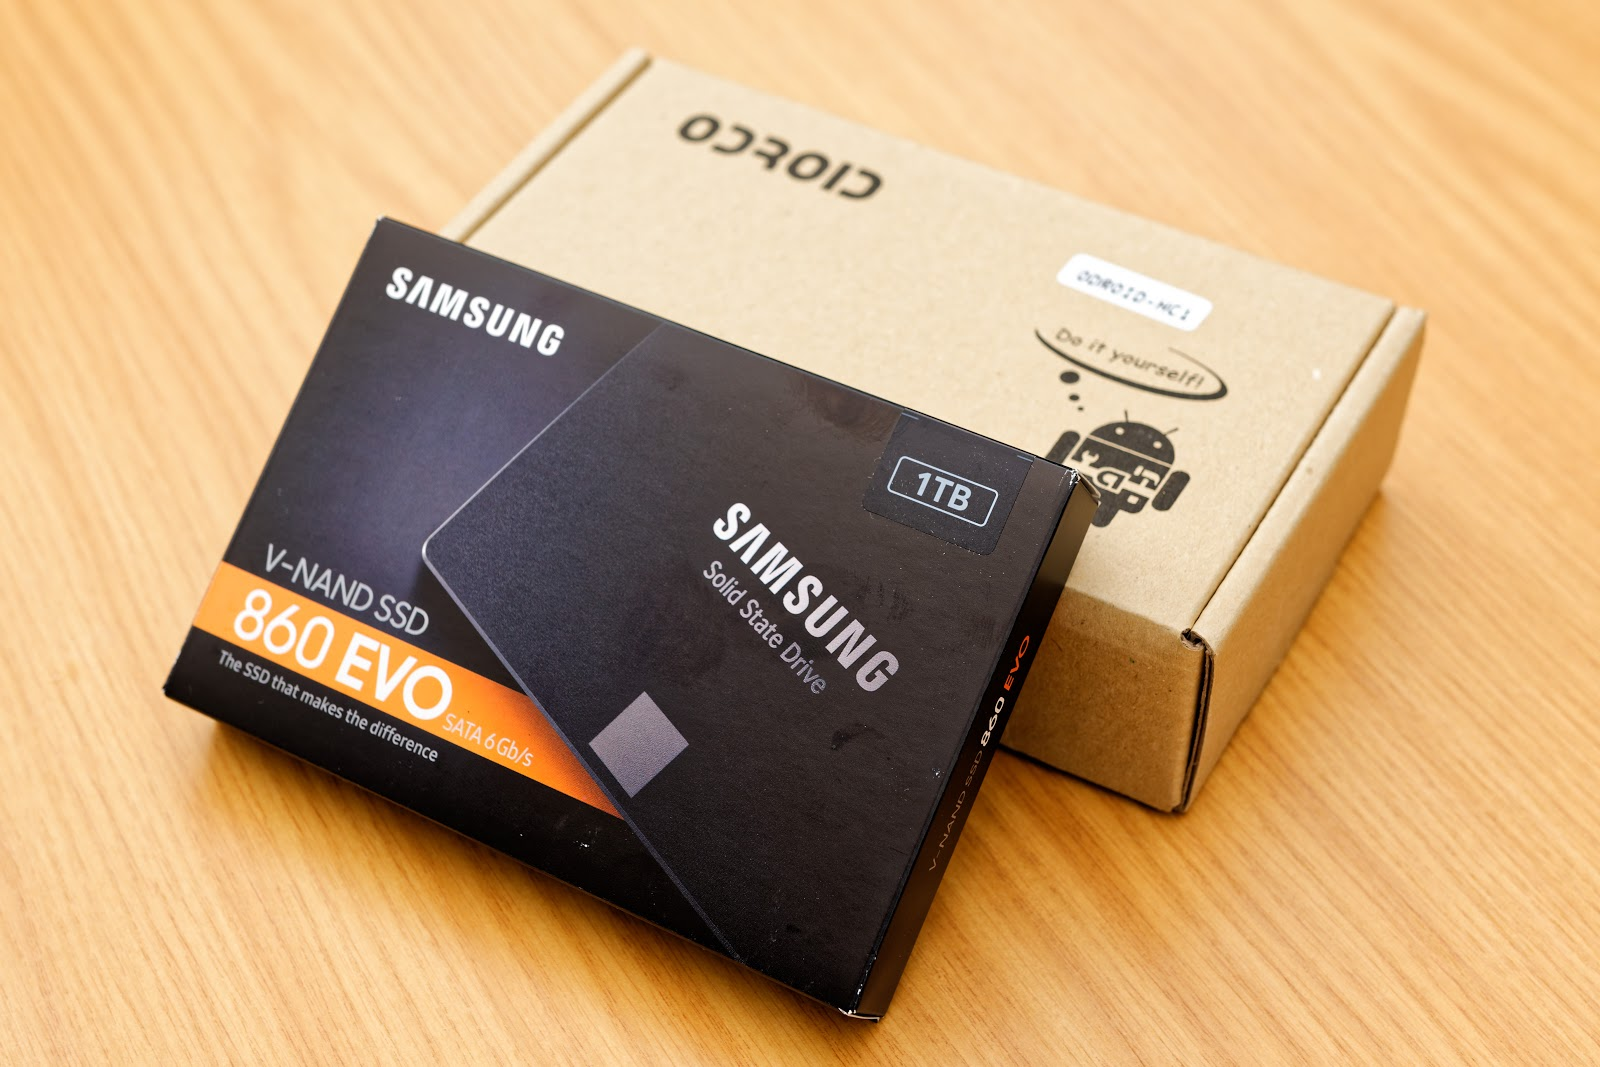 Boxed Samsung 860 EVO SSD and ODroid HC1